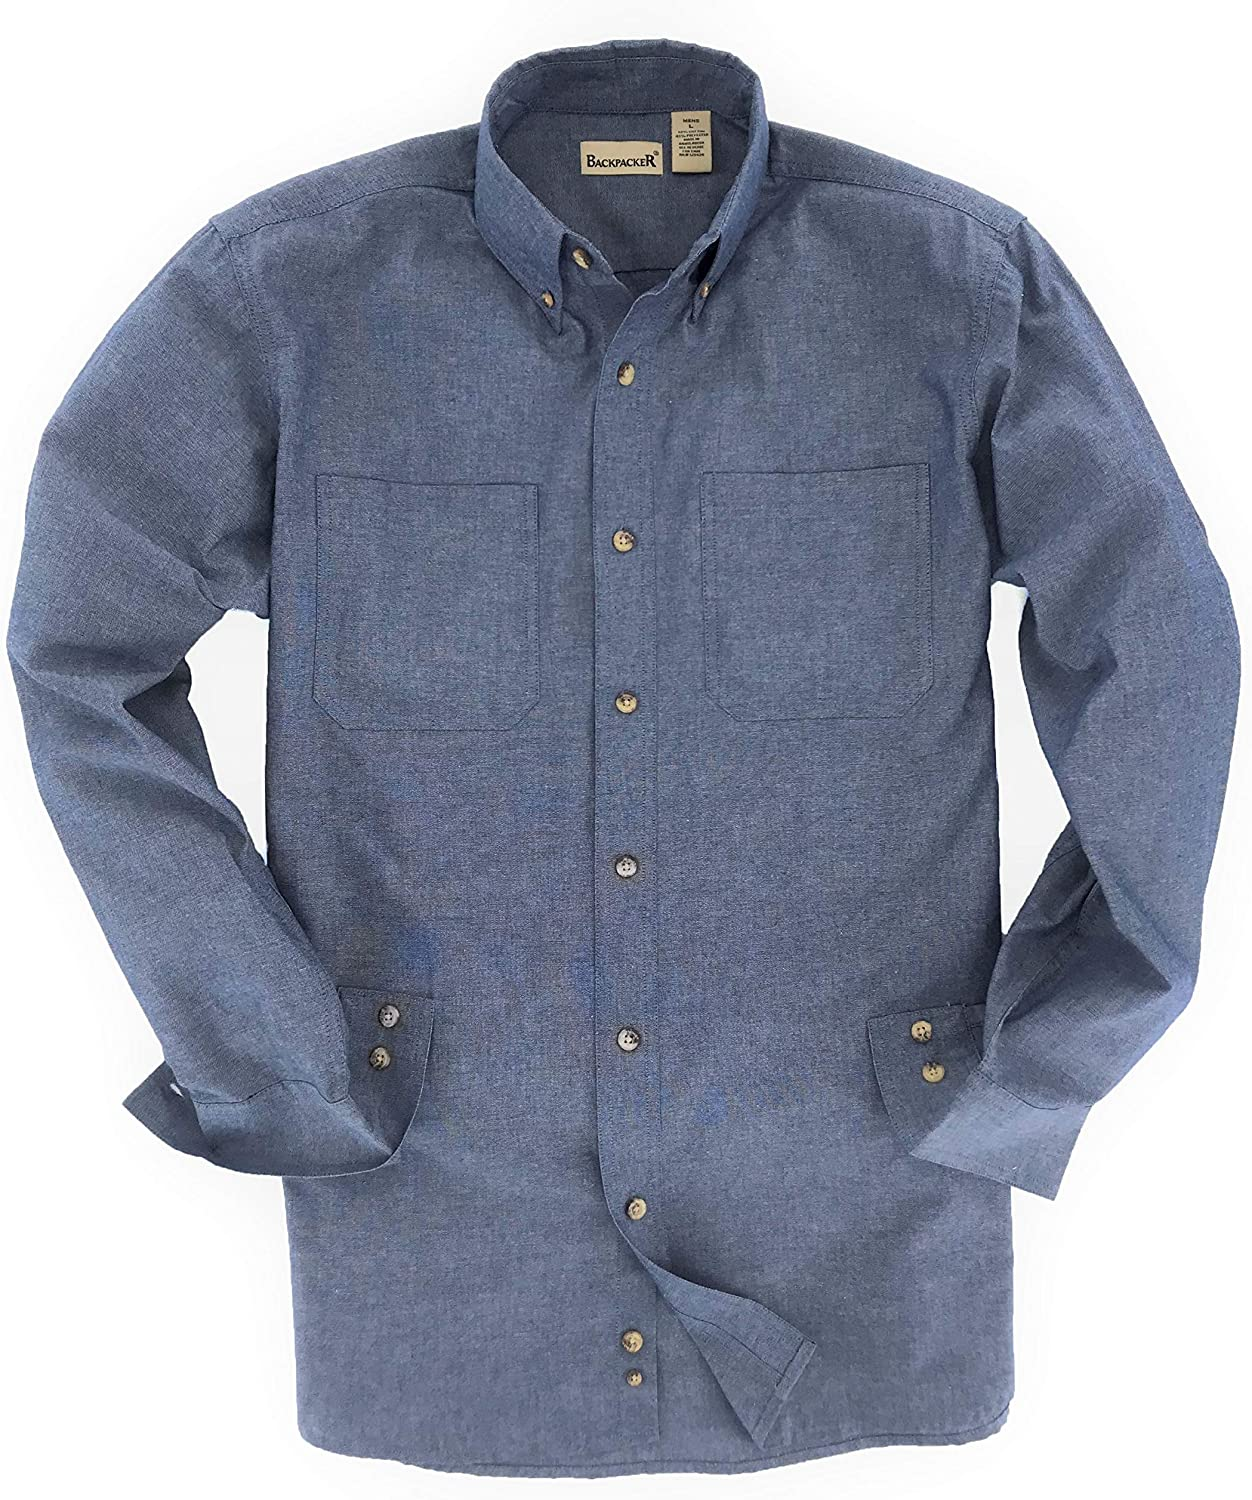 Backpacker Wrinkle Free Chambray